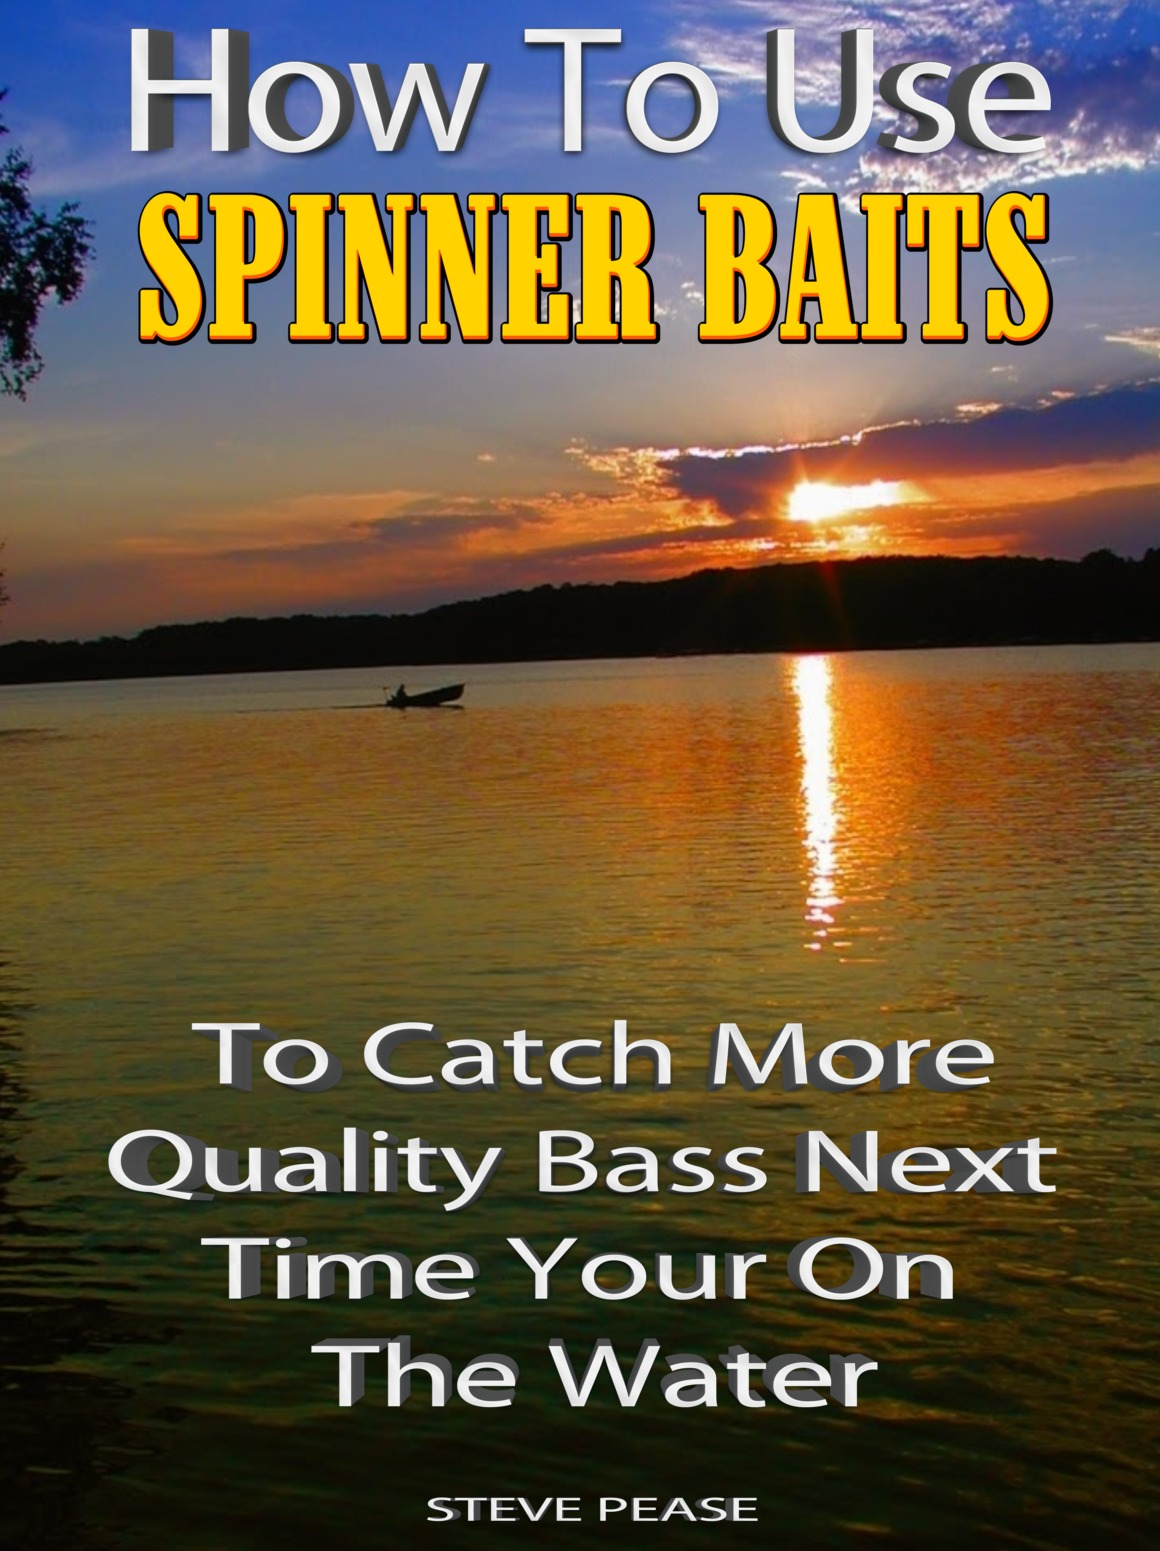 Fishing spinnerbaits